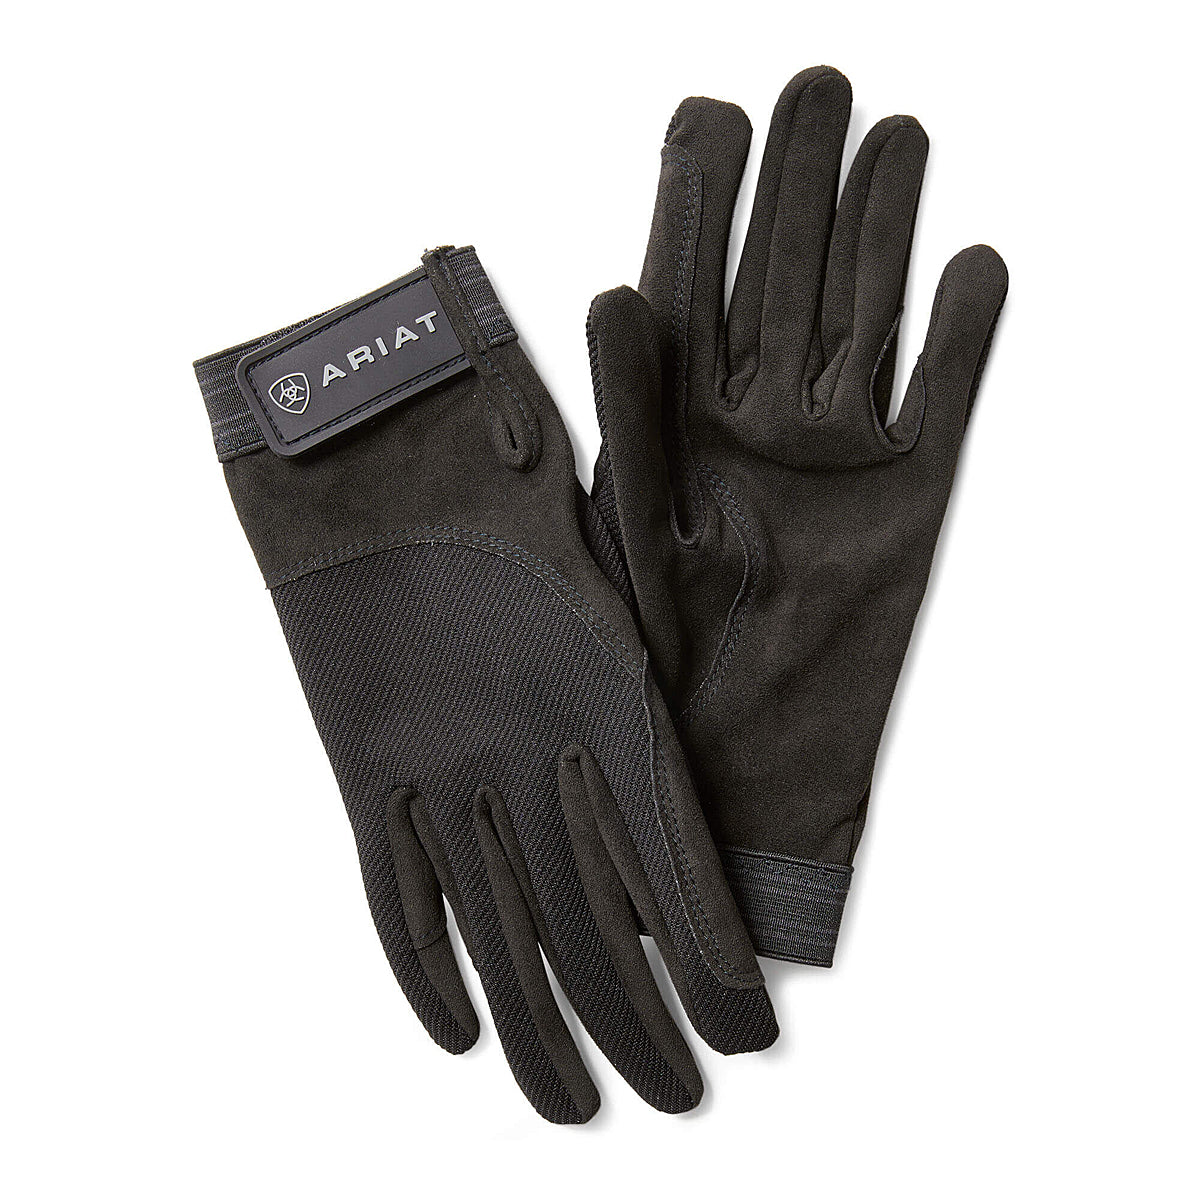 Ariat Tek Grip Gloves Image.  Black gloves with White logo, on velcro closure.